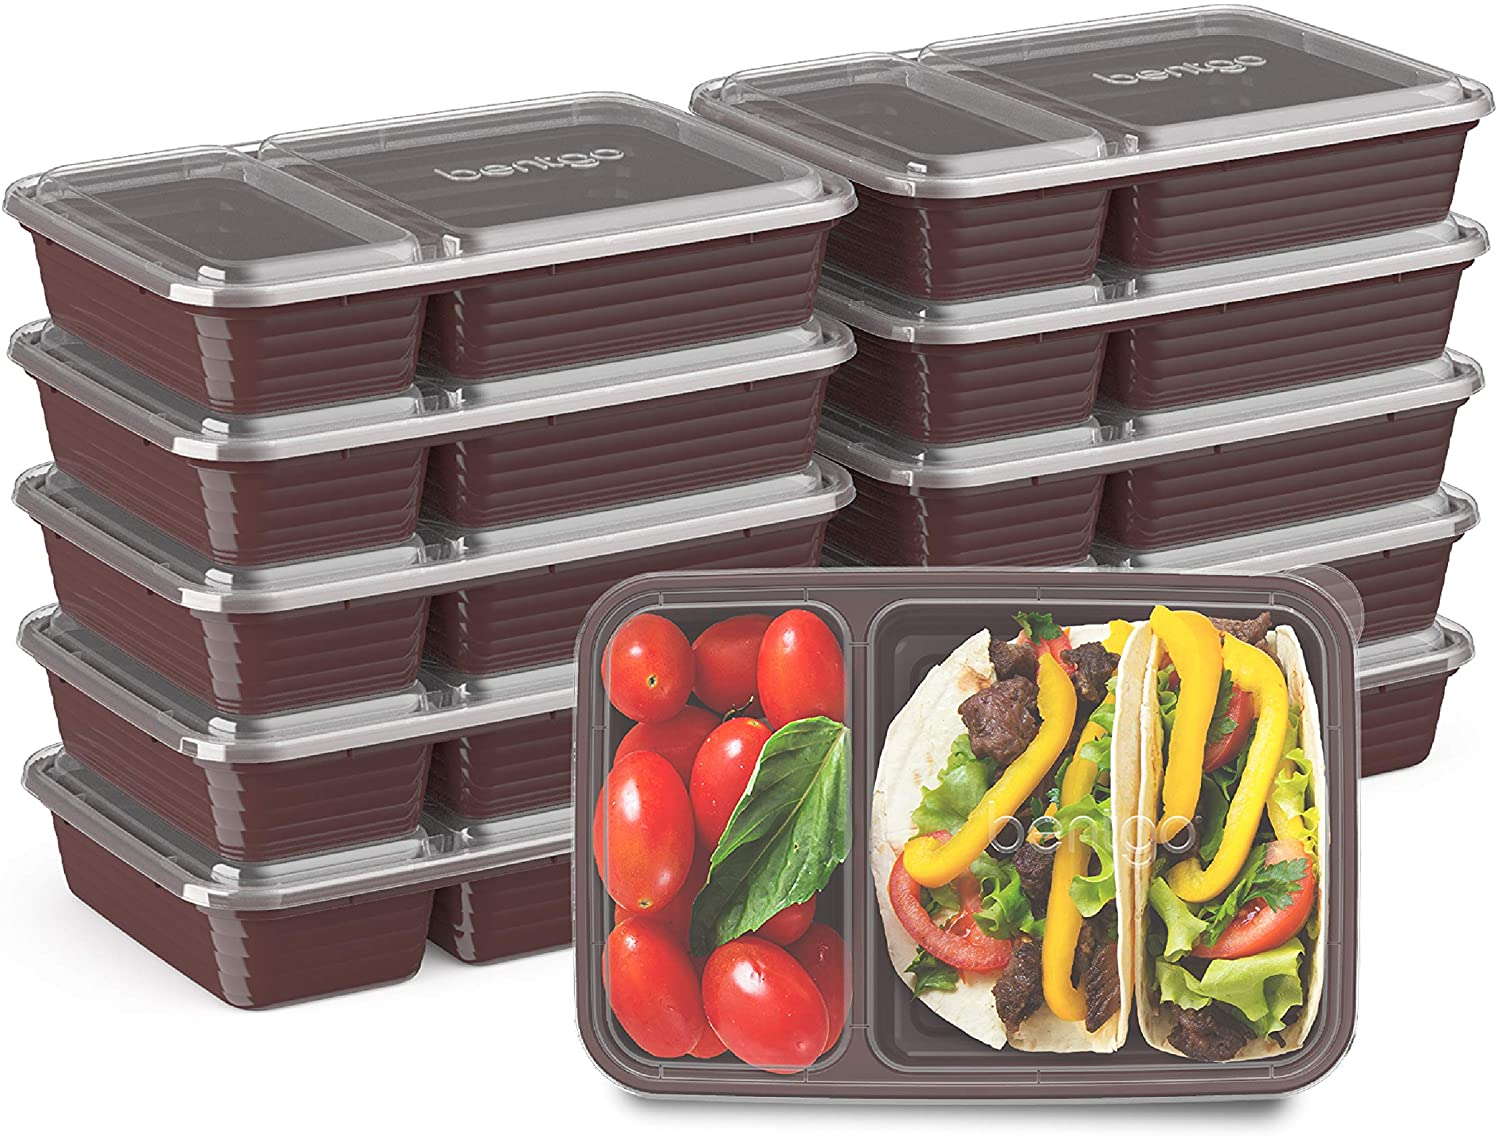 Bentgo Prep 2-Compartment Meal-Prep Containers with Custom-Fit Lids - Microwaveable, Durable, Reusable, BPA-Free, Freezer and Dishwasher Safe Food Storage Containers - 10 Trays & 10 Lids (Burgundy)